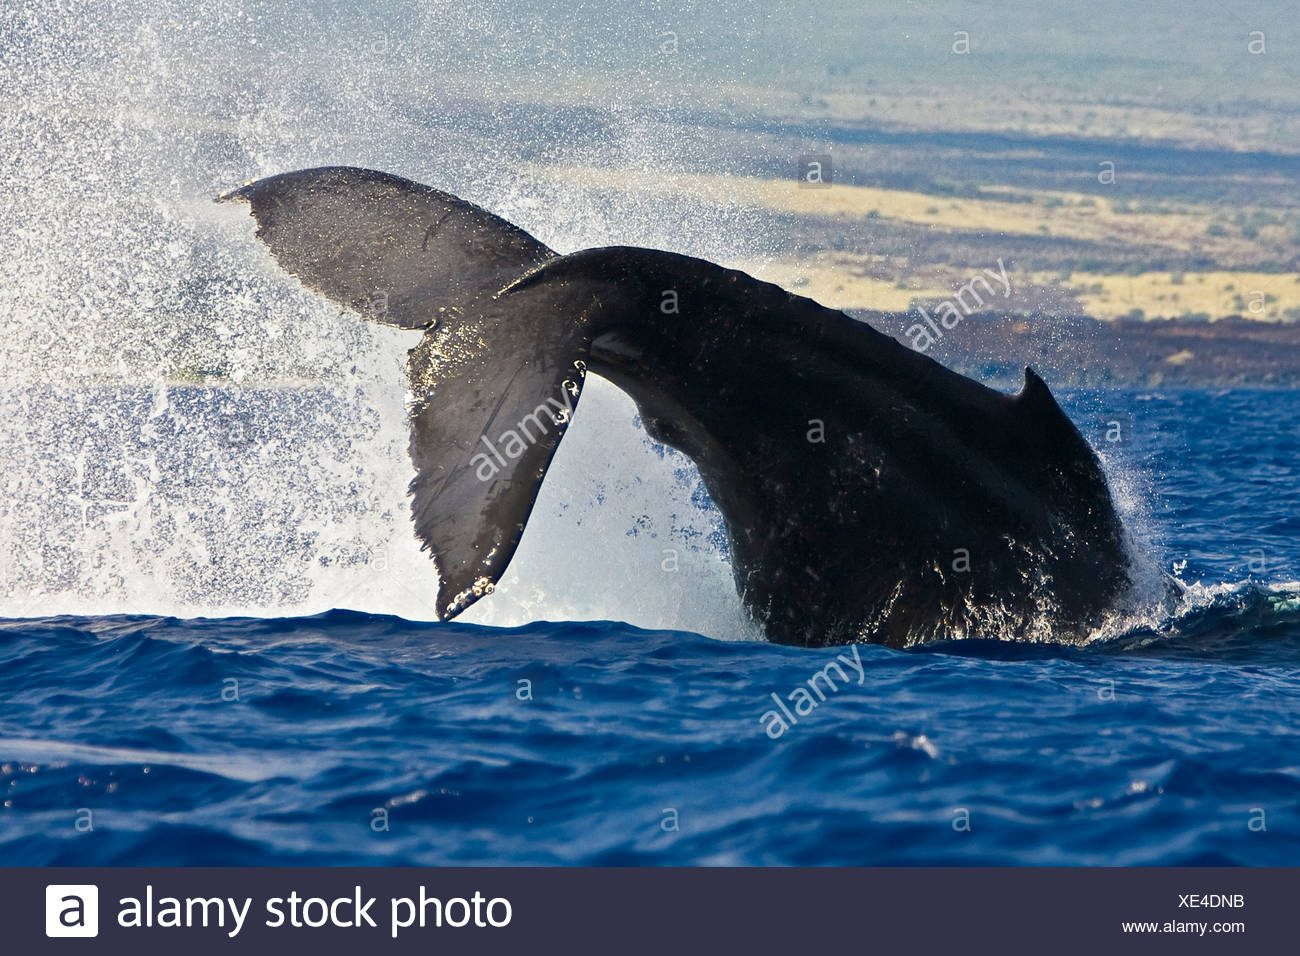 Tail of Humpback Whale, Megaptera novaeangliae, Kona Coast, Big Island, Hawaii, USA - Stock Image